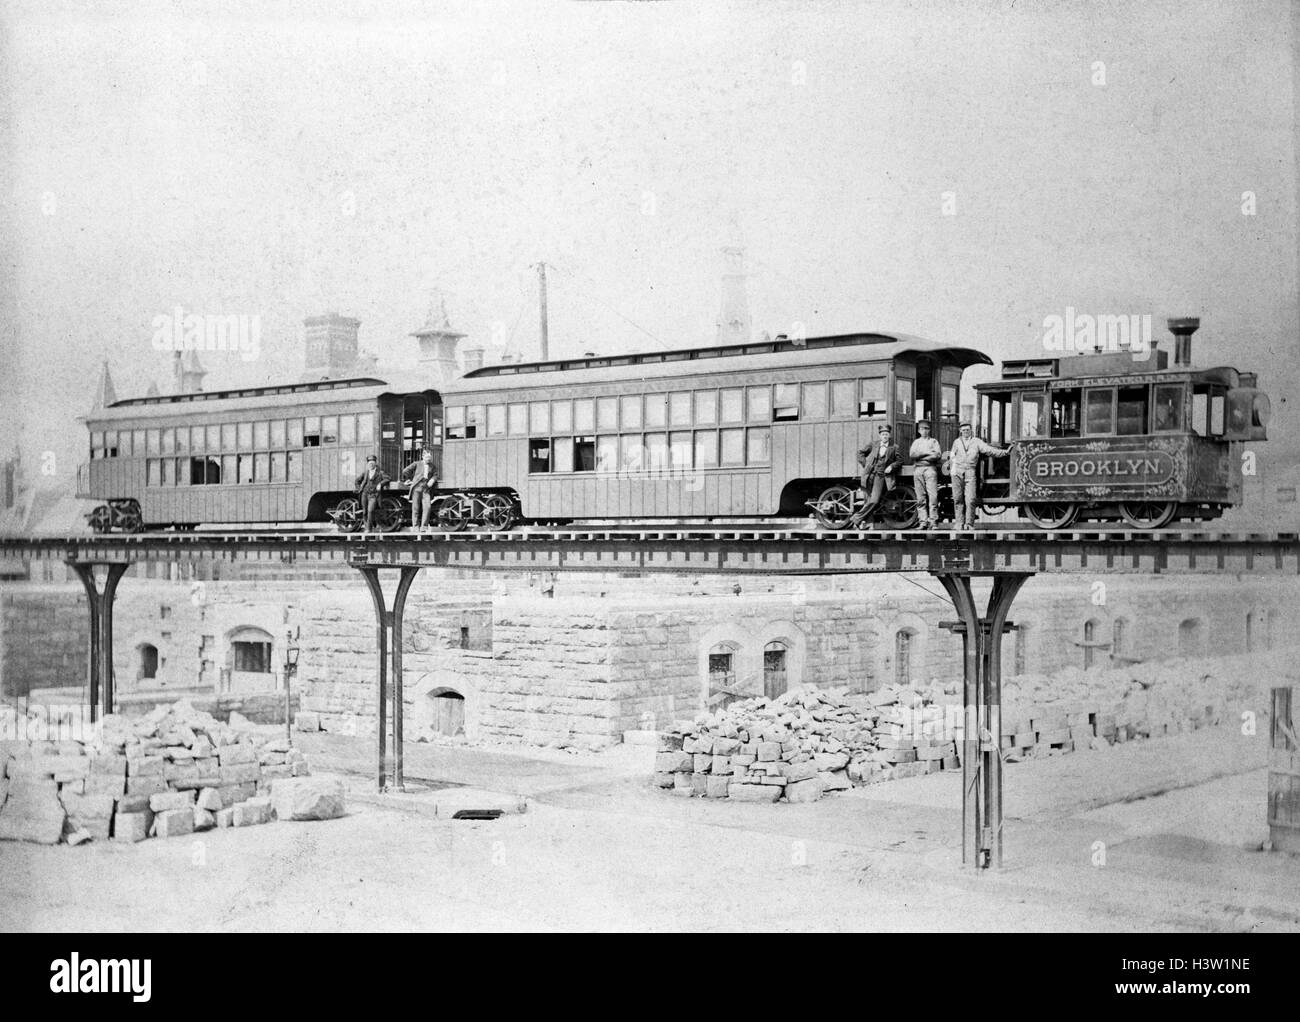 1880s 1890s STEAM ENGINE AND TWO PASSENGER CARS ON THE EL ELEVATED TRAIN TRACKS IN BROOKLYN NEW YORK USA - Stock Image